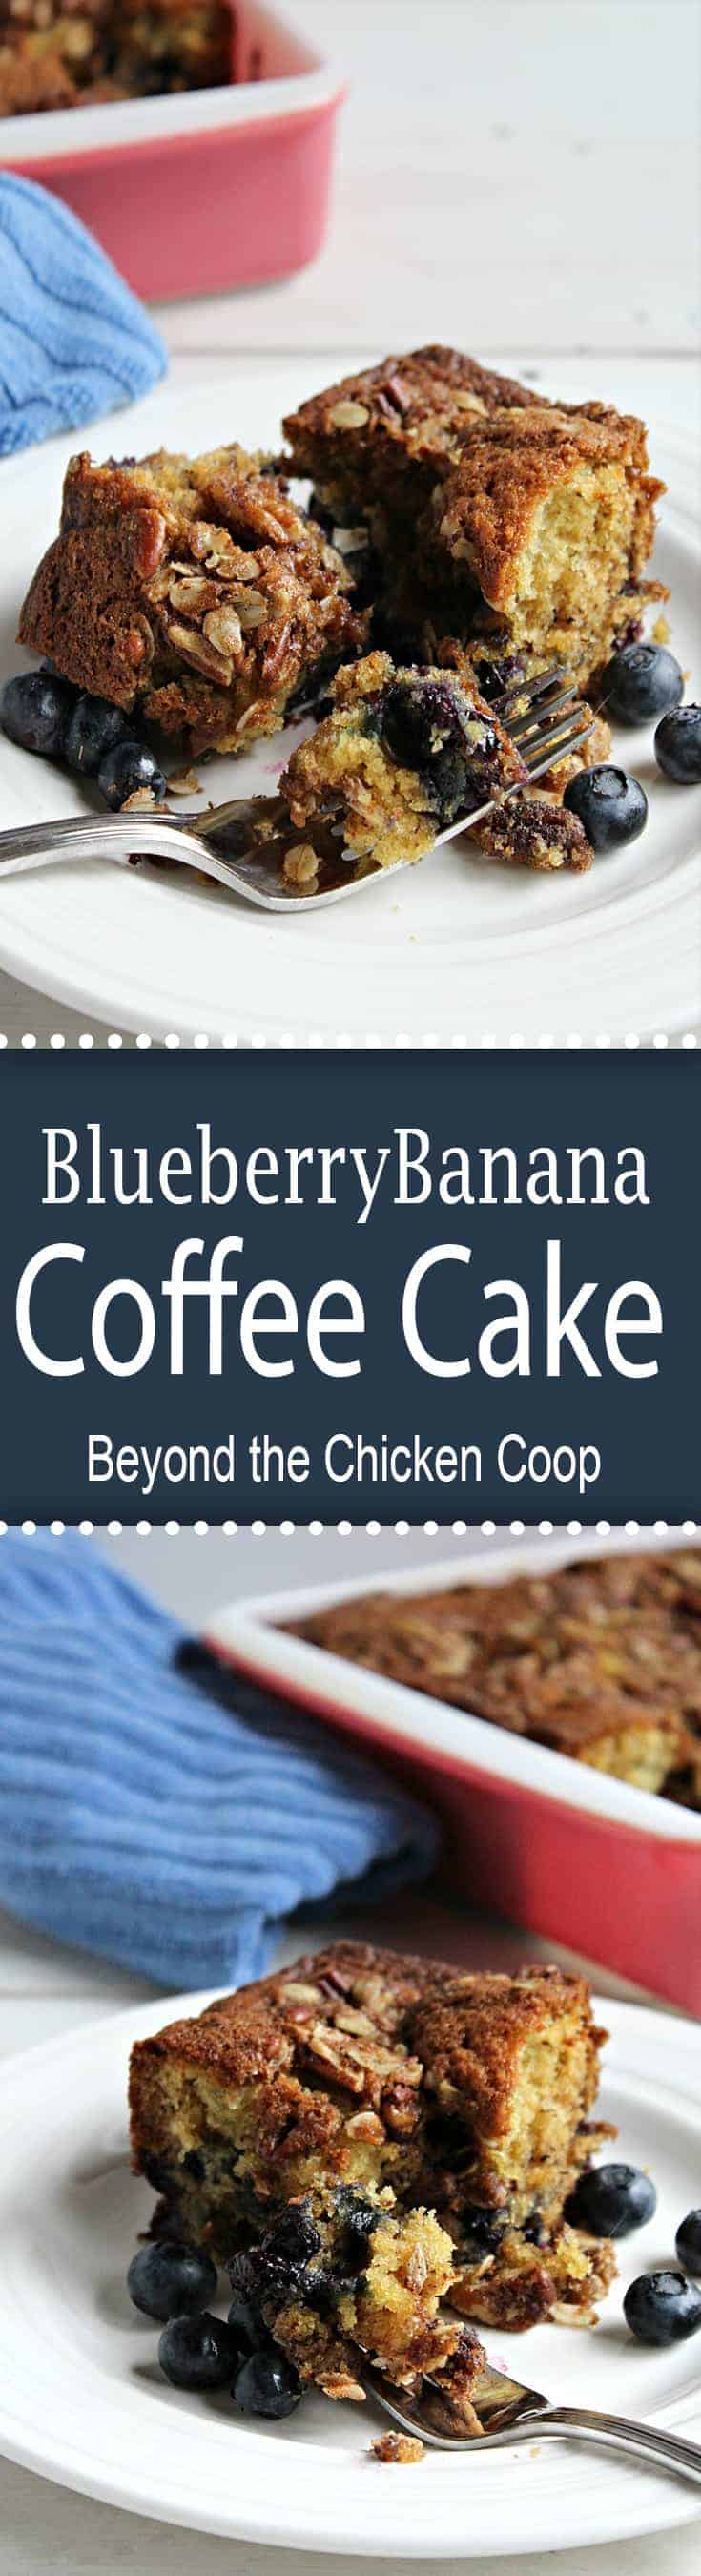 Blueberry banana coffee cake is a great way to start the day!